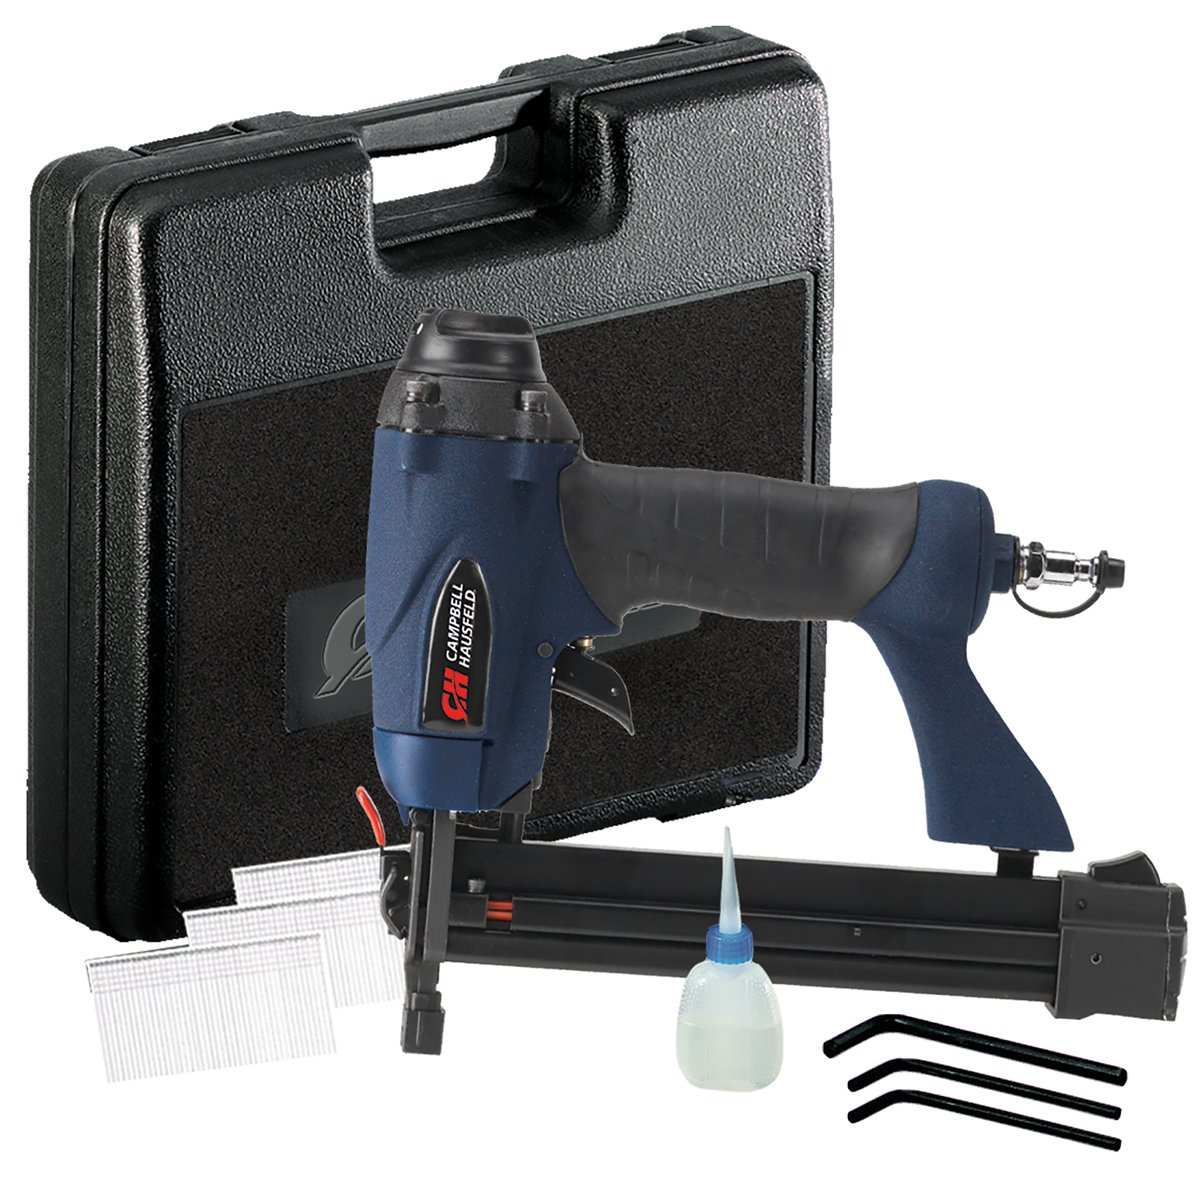 Clavadora Neumatica : Brad Nailer and Air Stapler, 2 in 1...